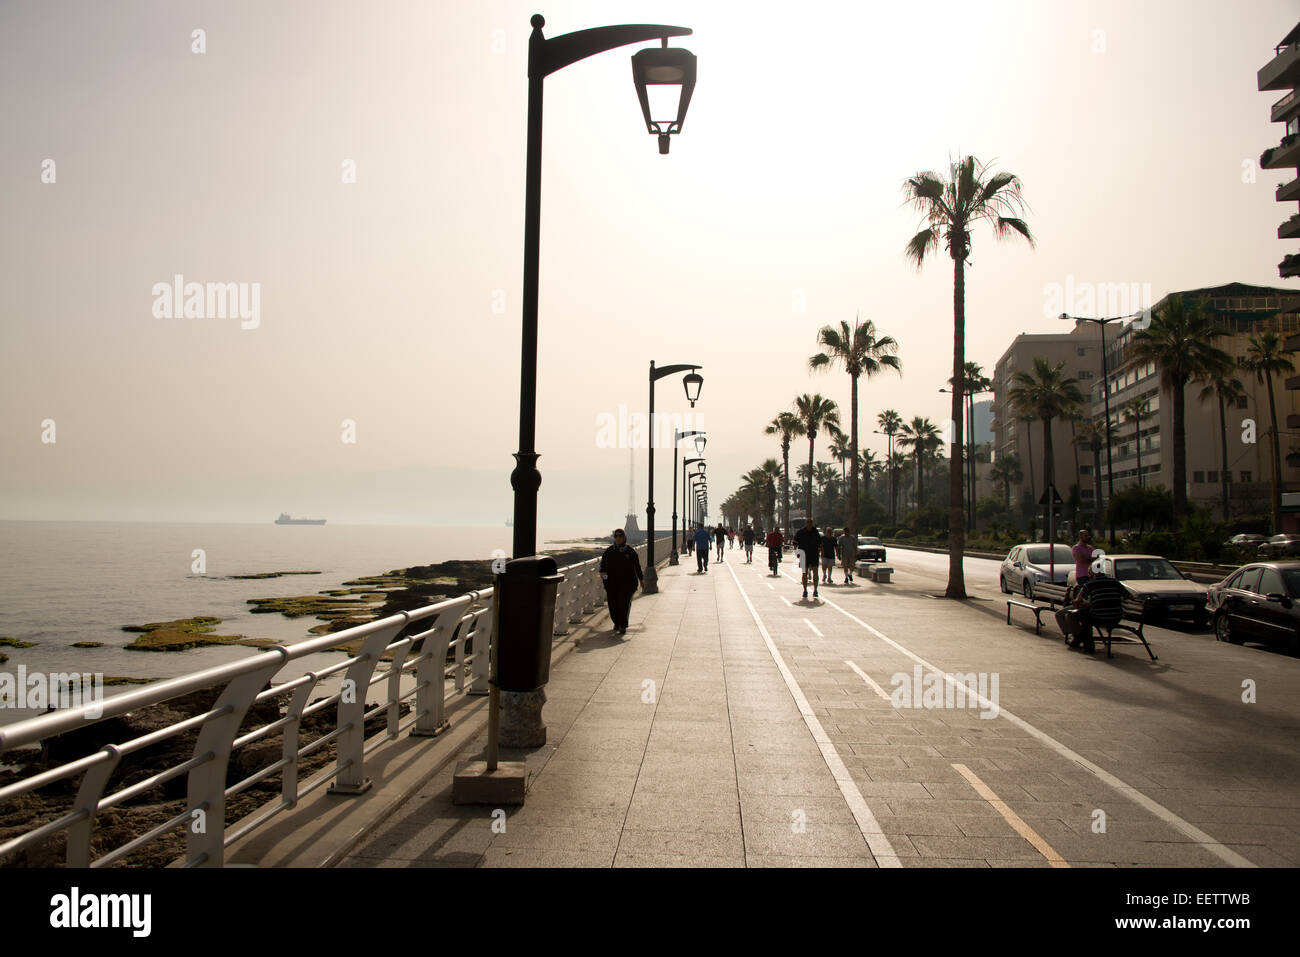 Seafront, Beirut - Stock Image